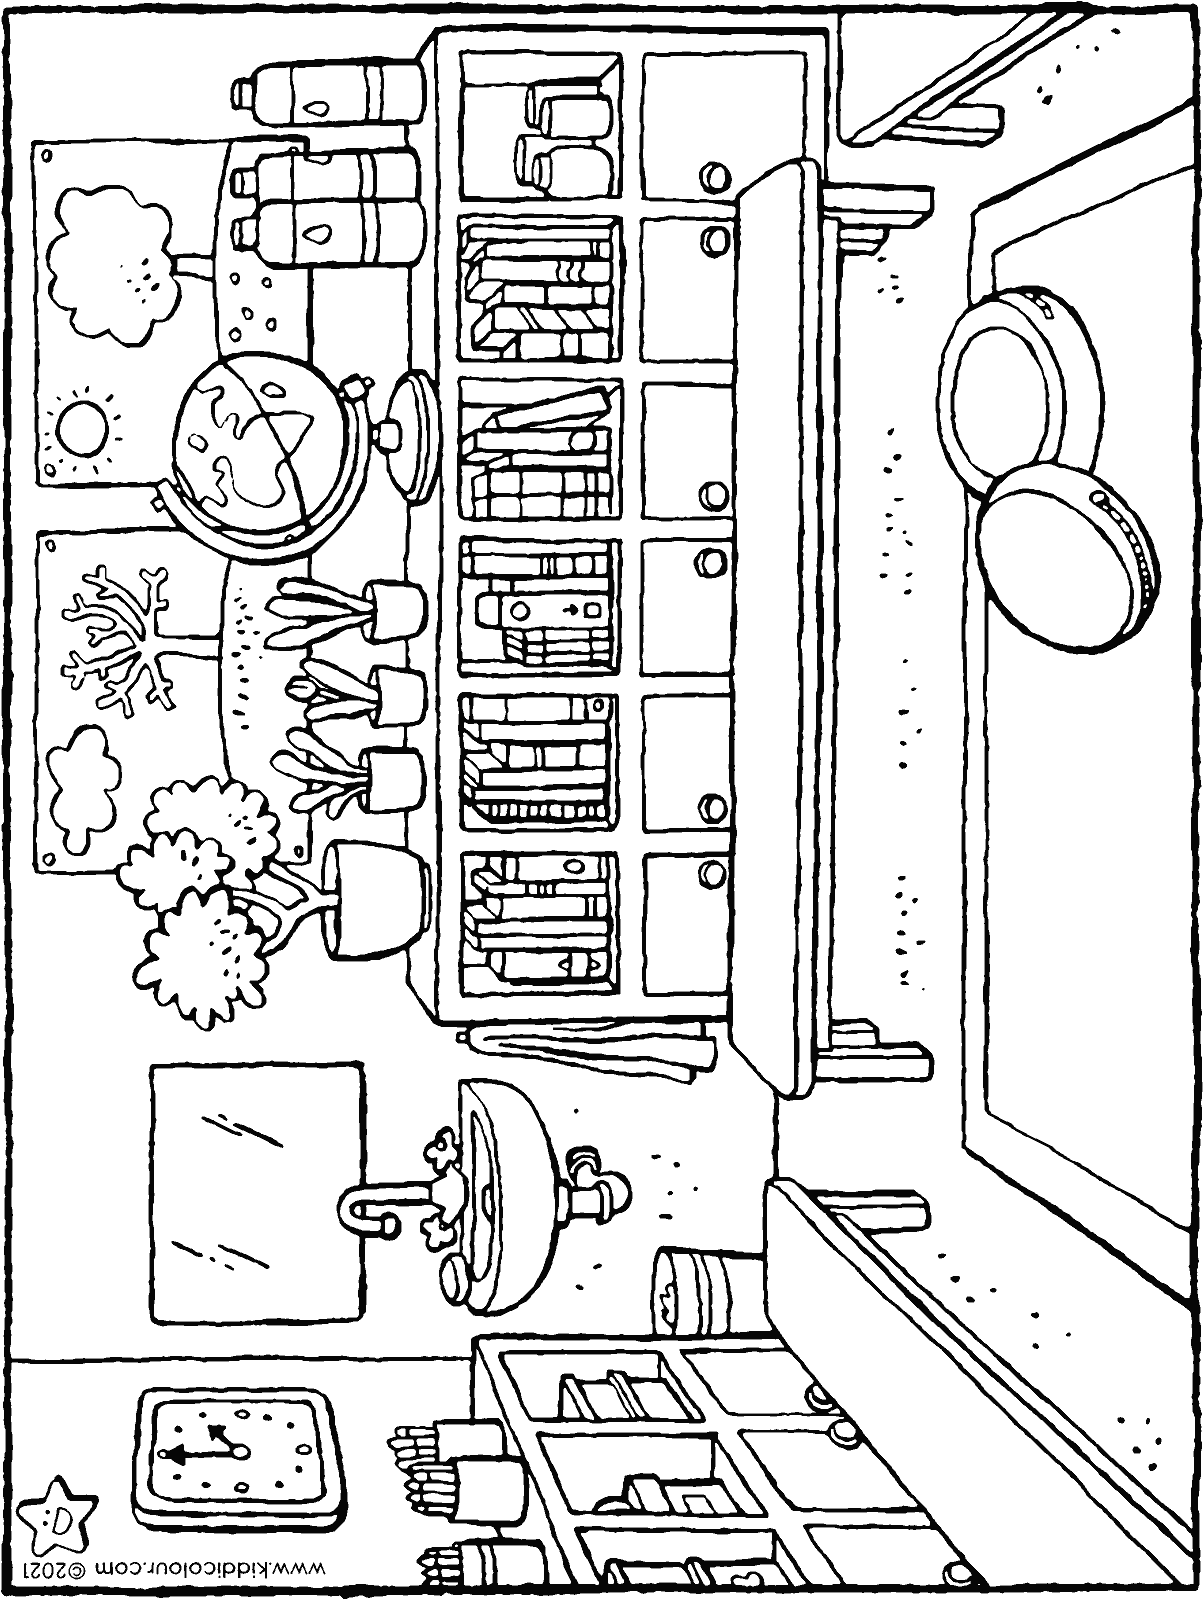 classroom colouring page drawing picture 01H